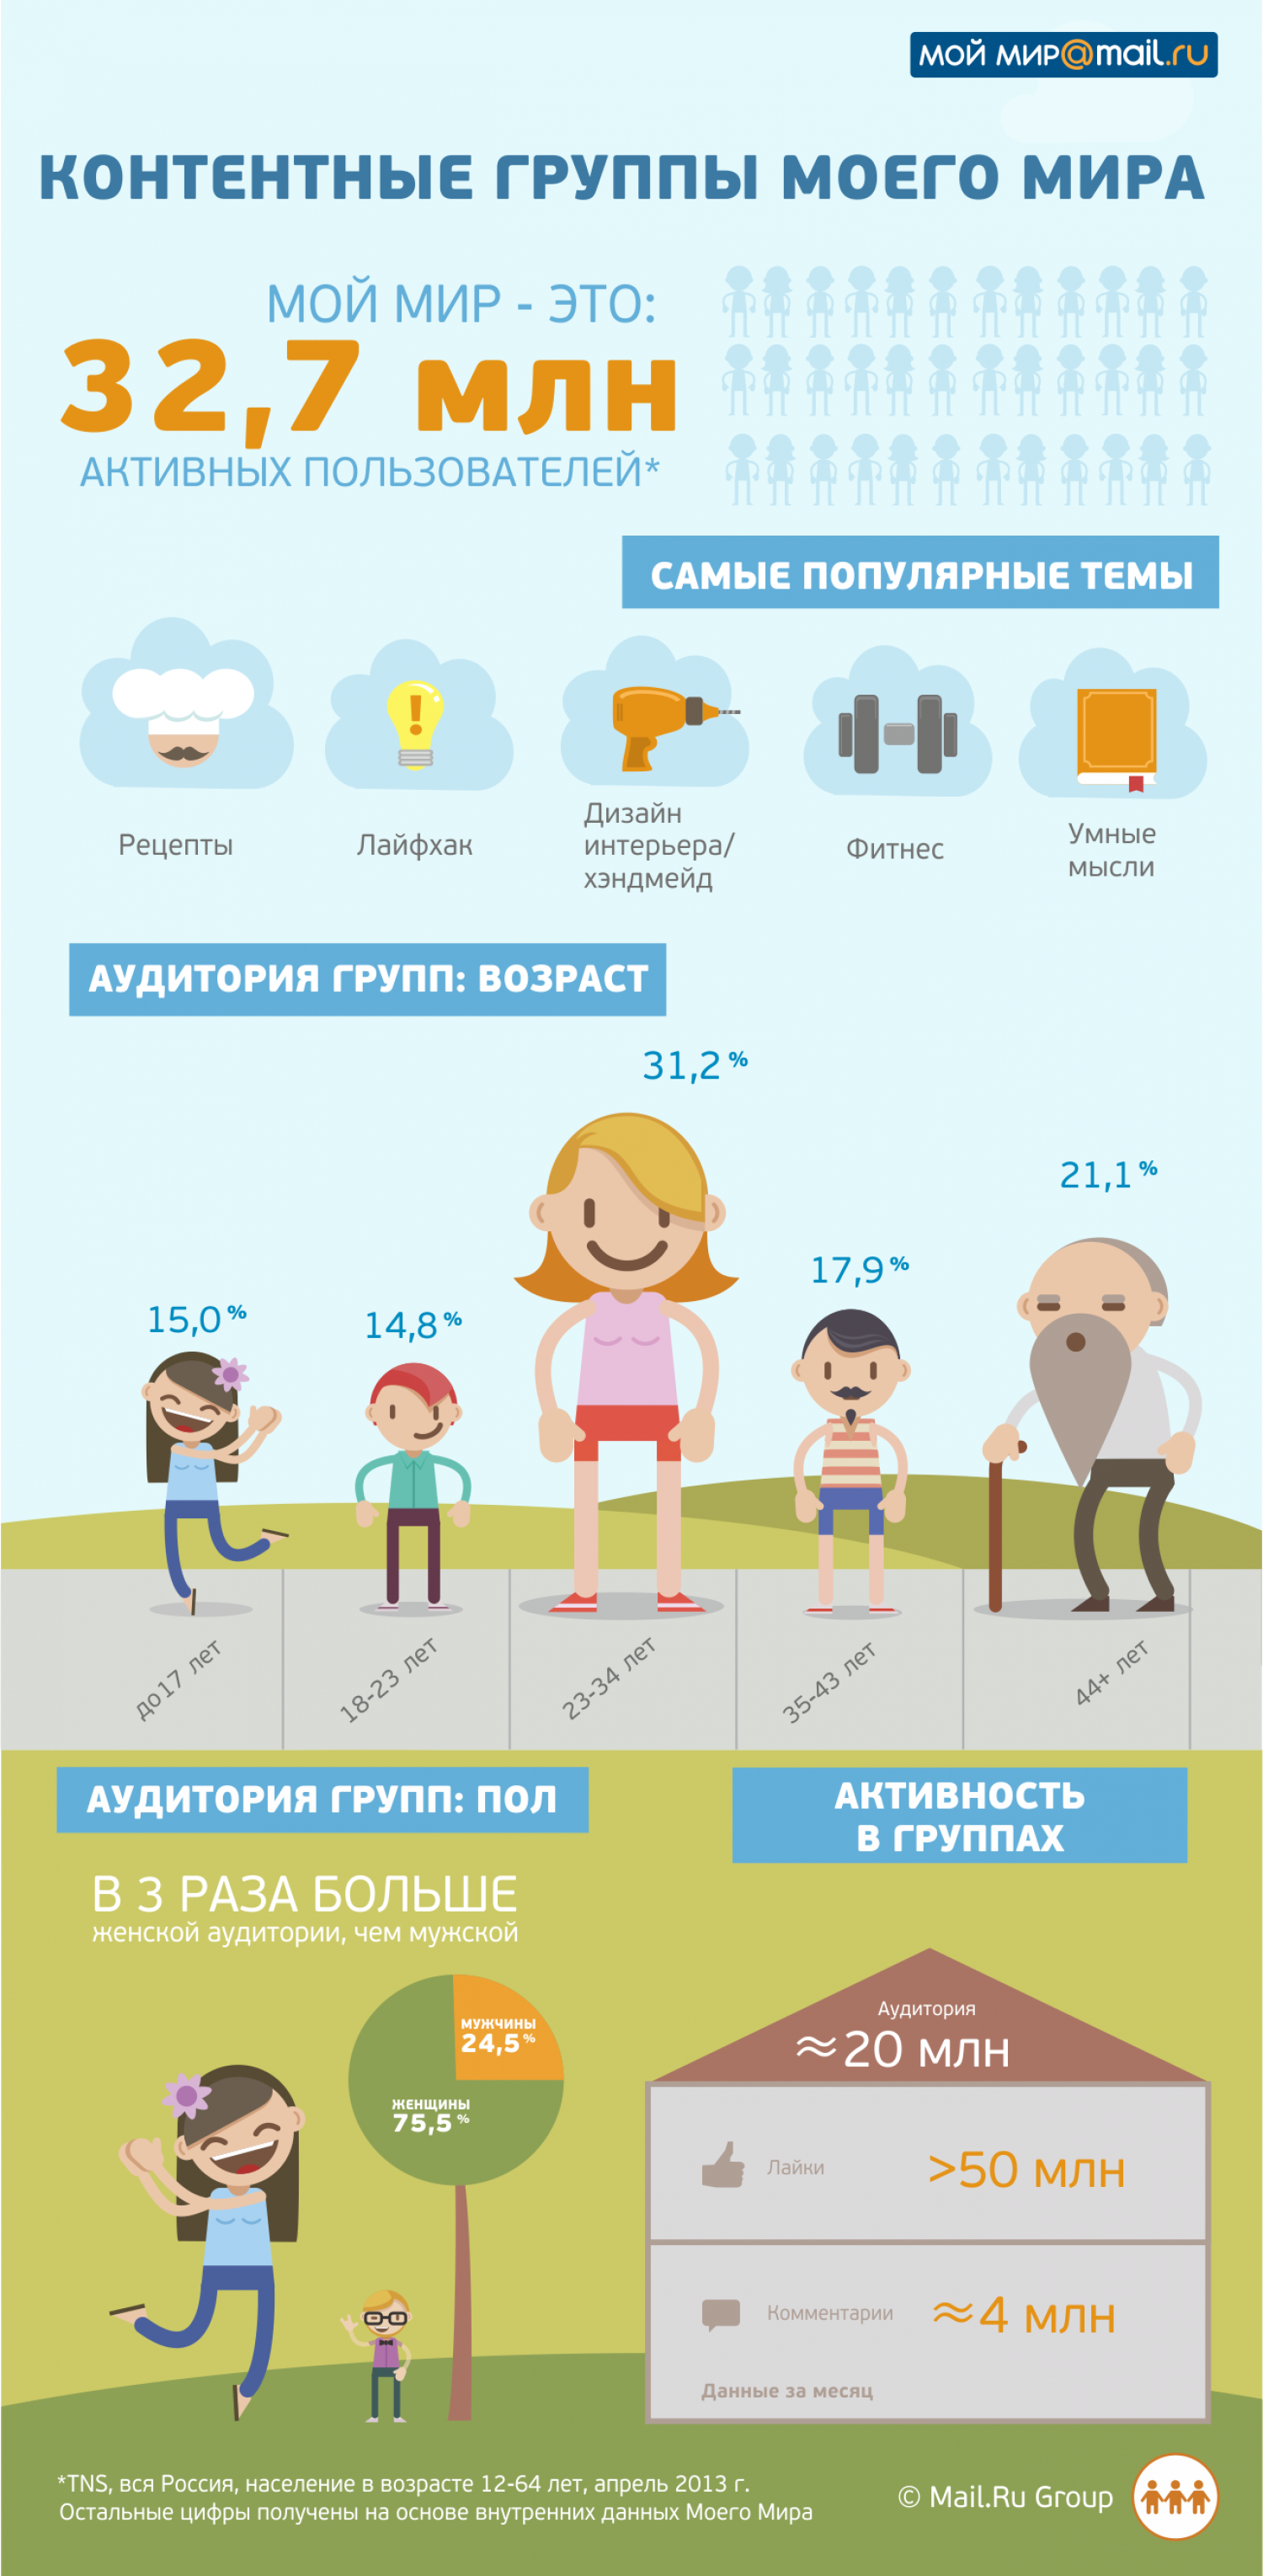 Content  Groups of Mail.ru Infographic